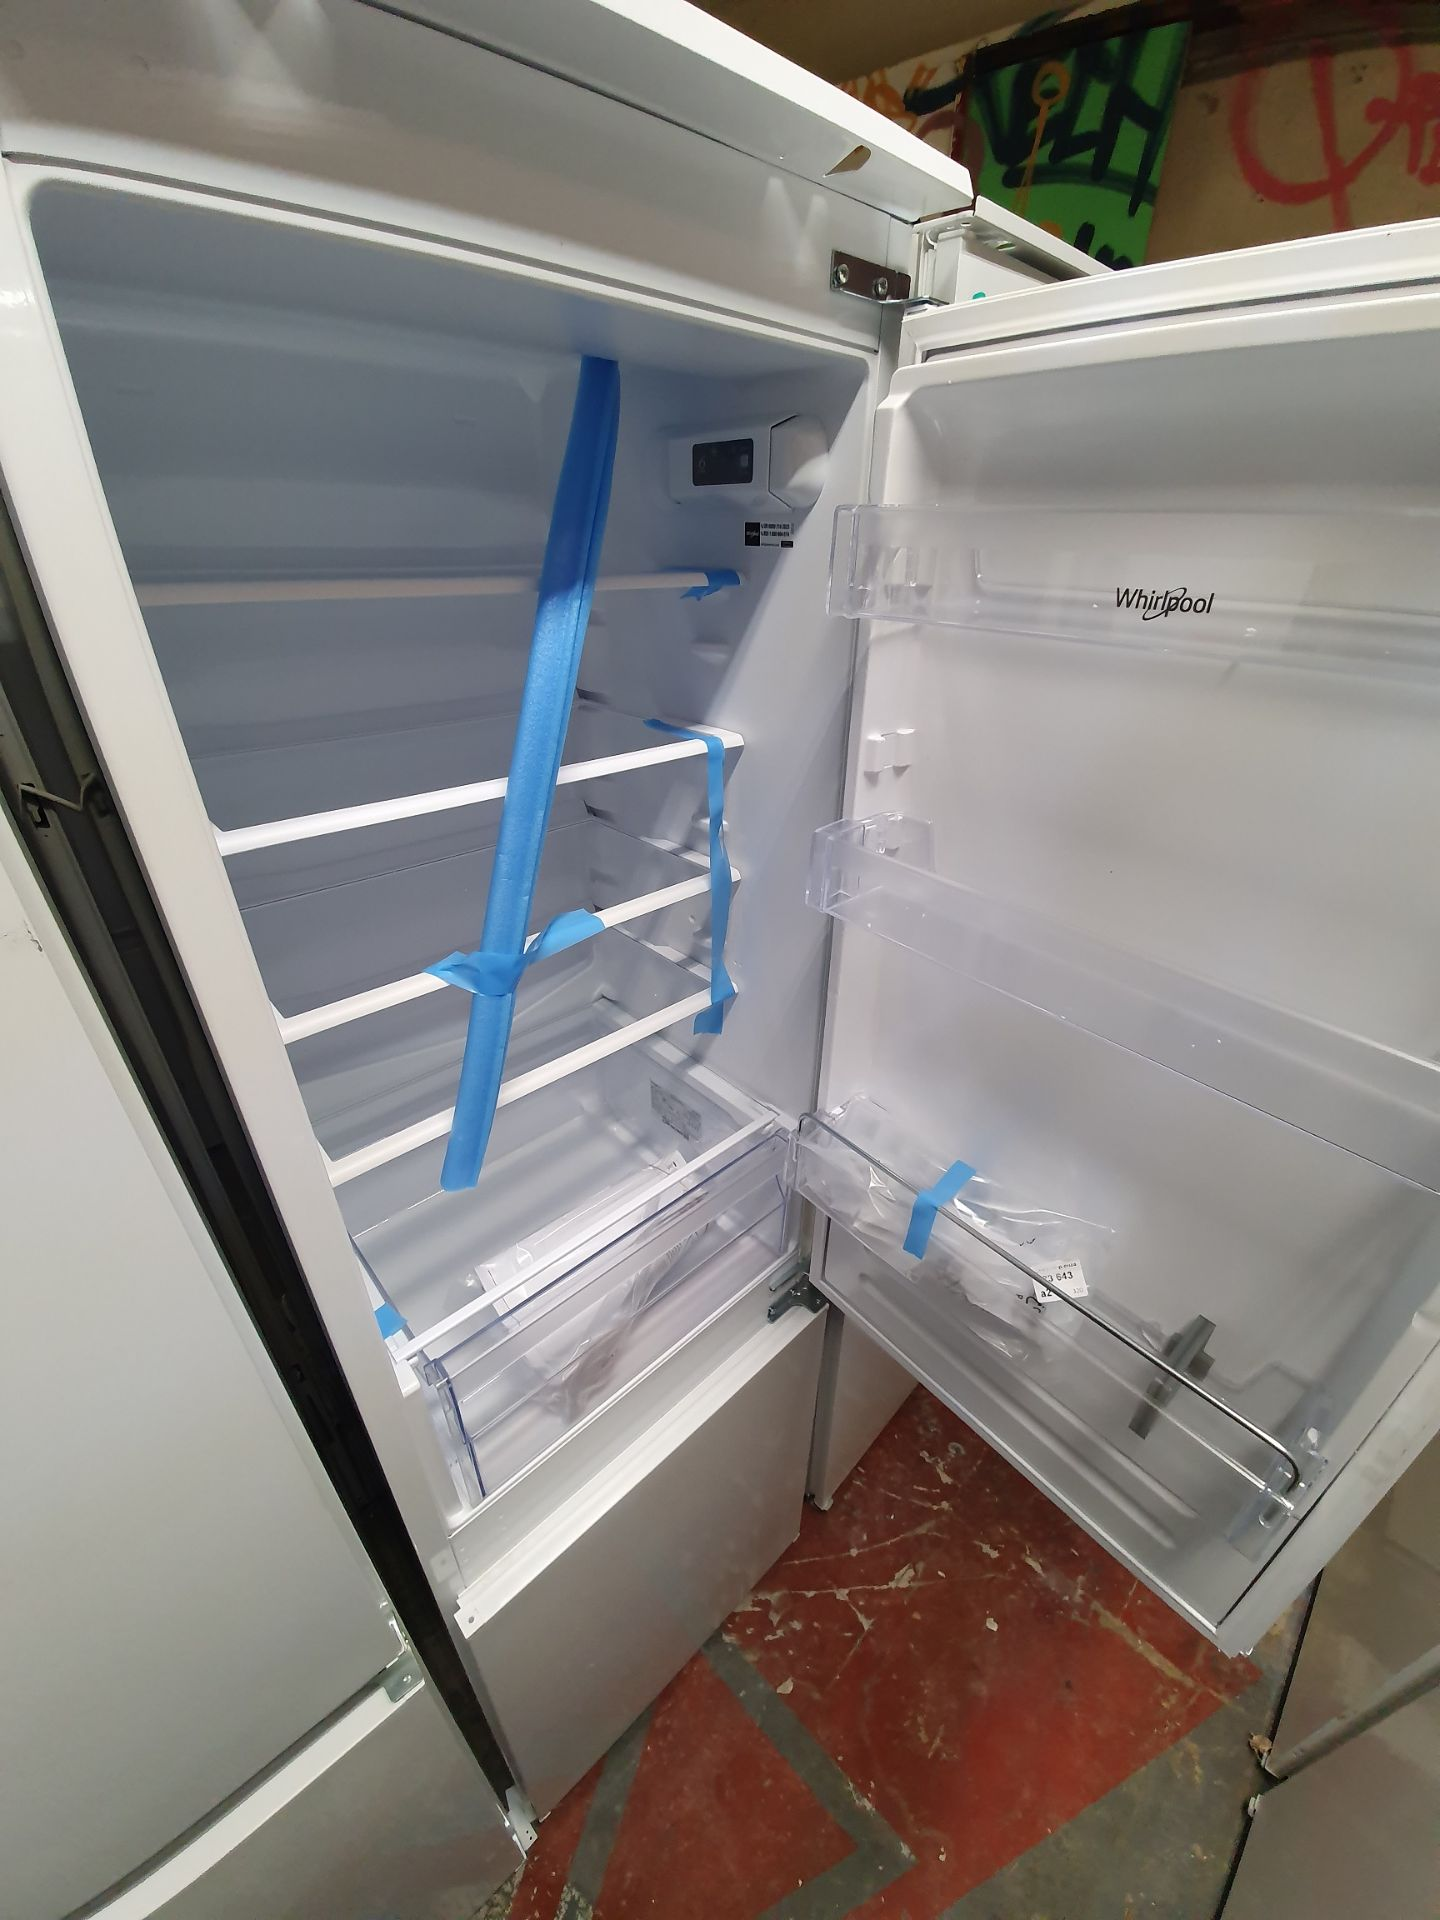 NEW/GRADED AND UNPACKAGED Prima Plus PRRF700 Built In Frost Free Fridge Freezer (Brand new slight - Image 10 of 14